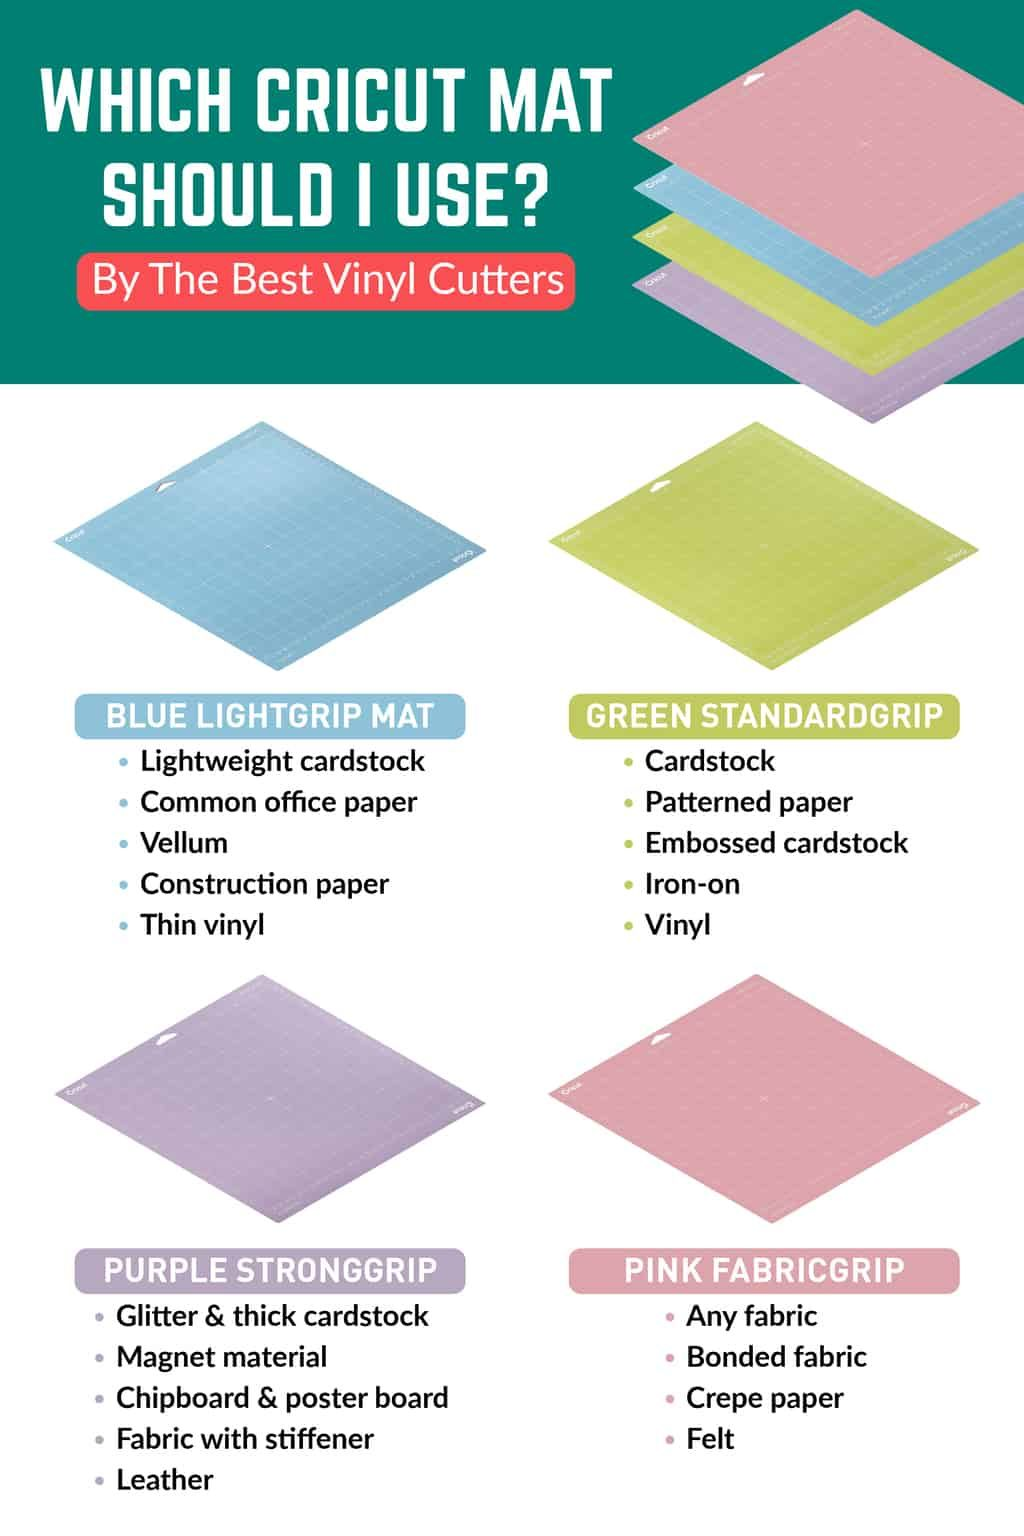 Different Types of Cricut Mats: Which Mat is Best